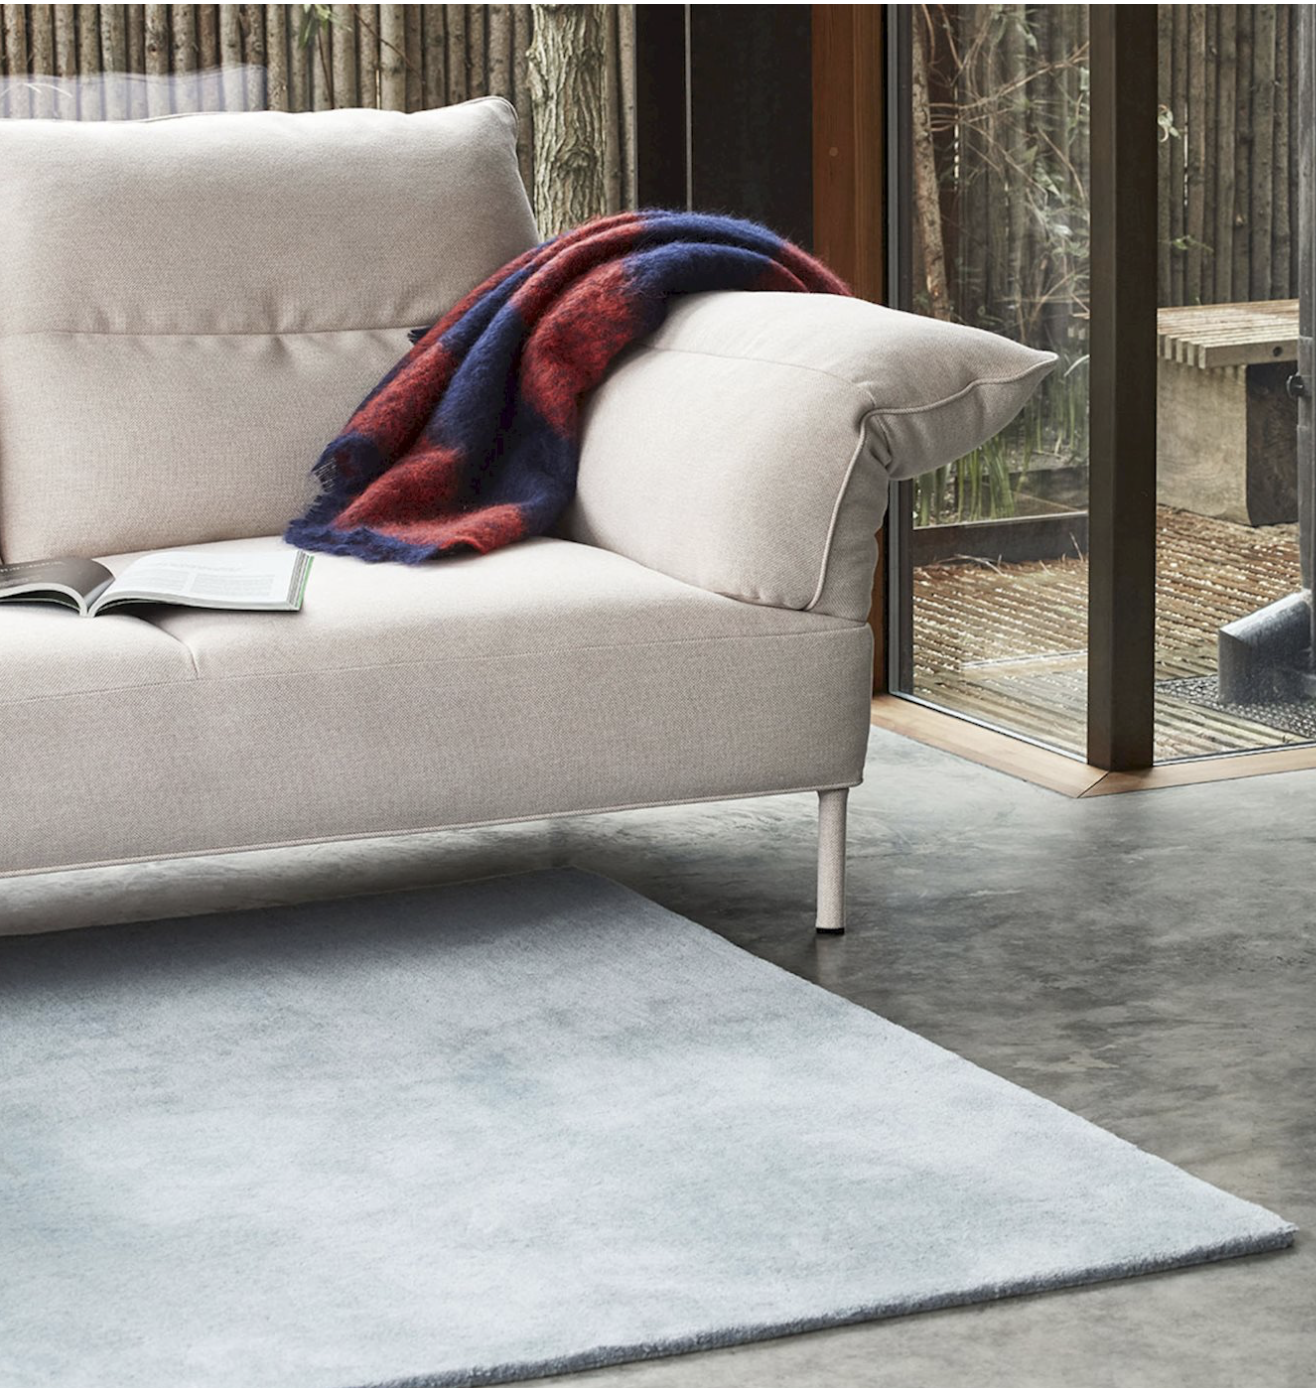 if you want a plain colour rug, Denmark's Hay's No 2 rug in pure wool is simple and pleasing